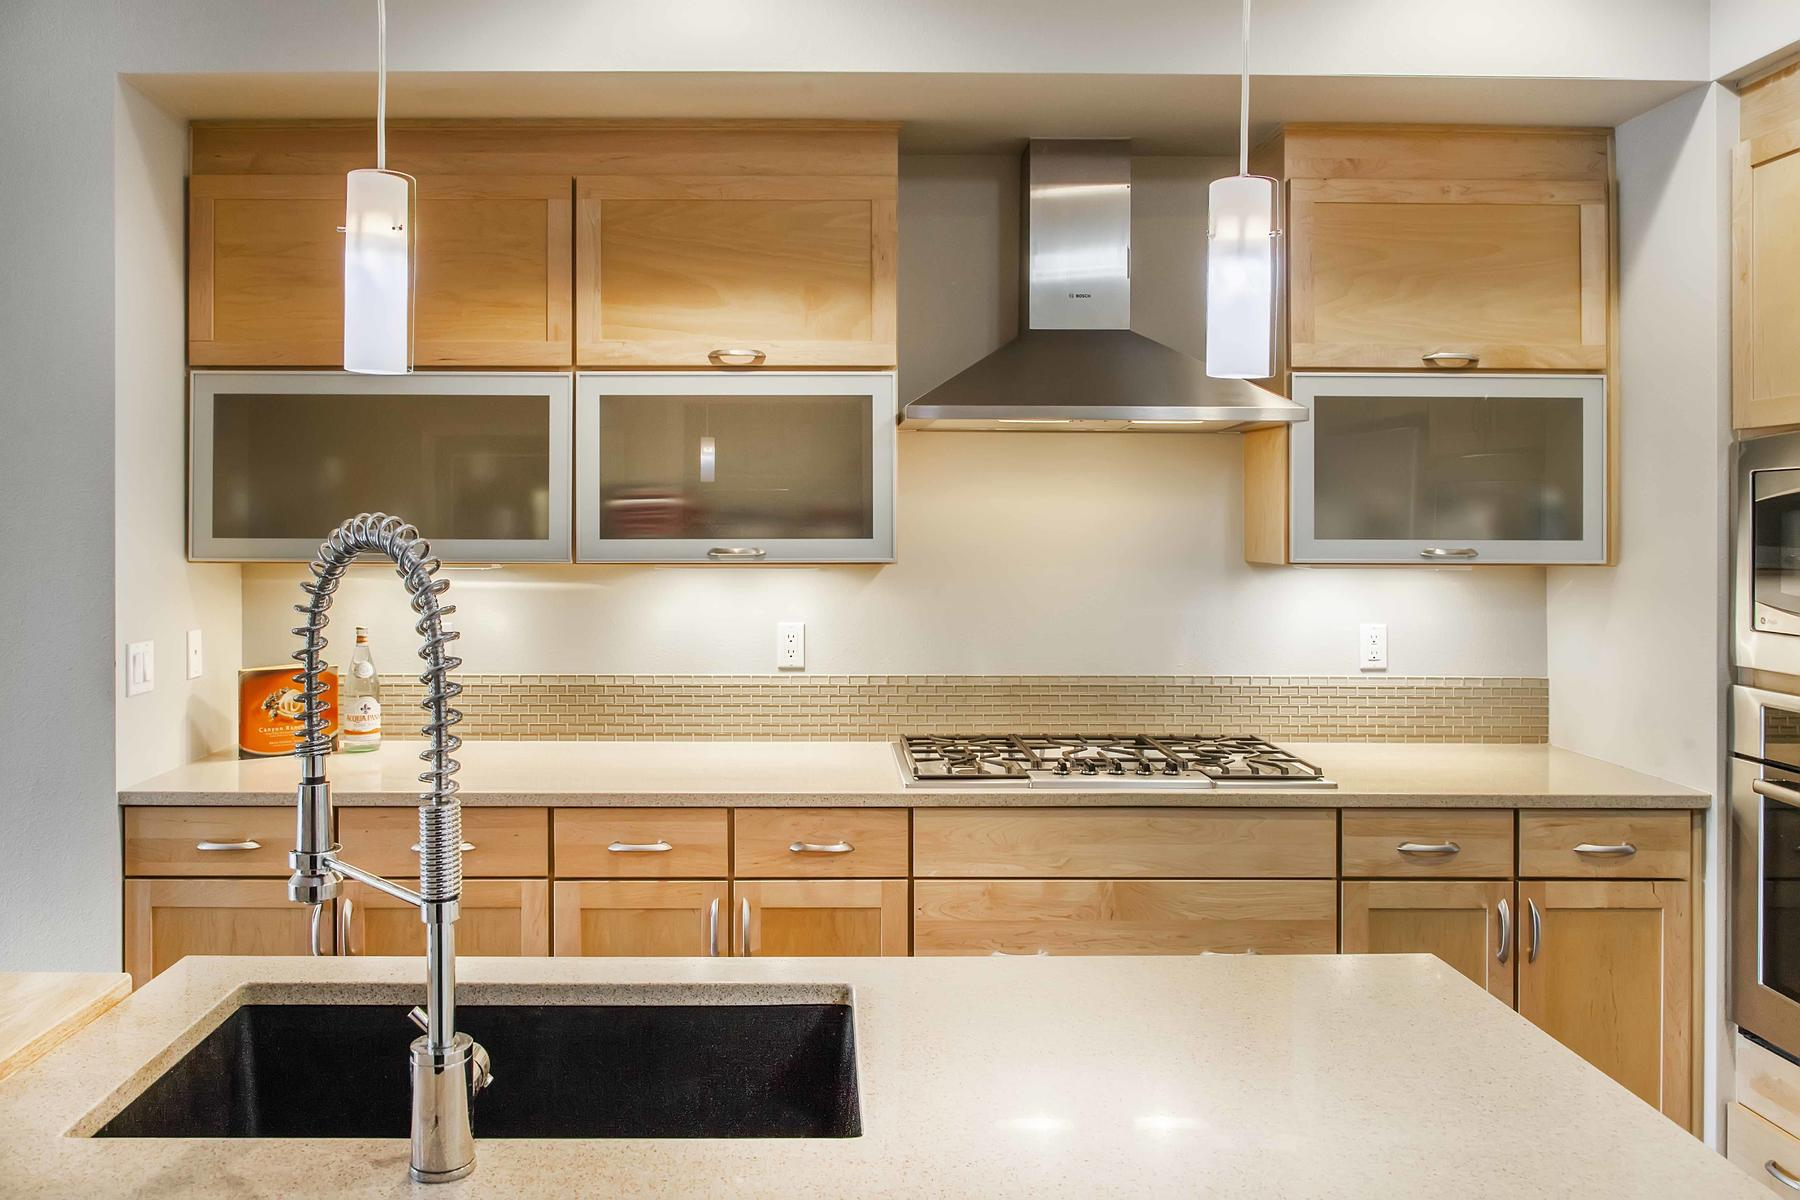 Property for Active at 360 South Lafayette Street #405 360 South Lafayette Street #405 Denver, Colorado 80209 United States